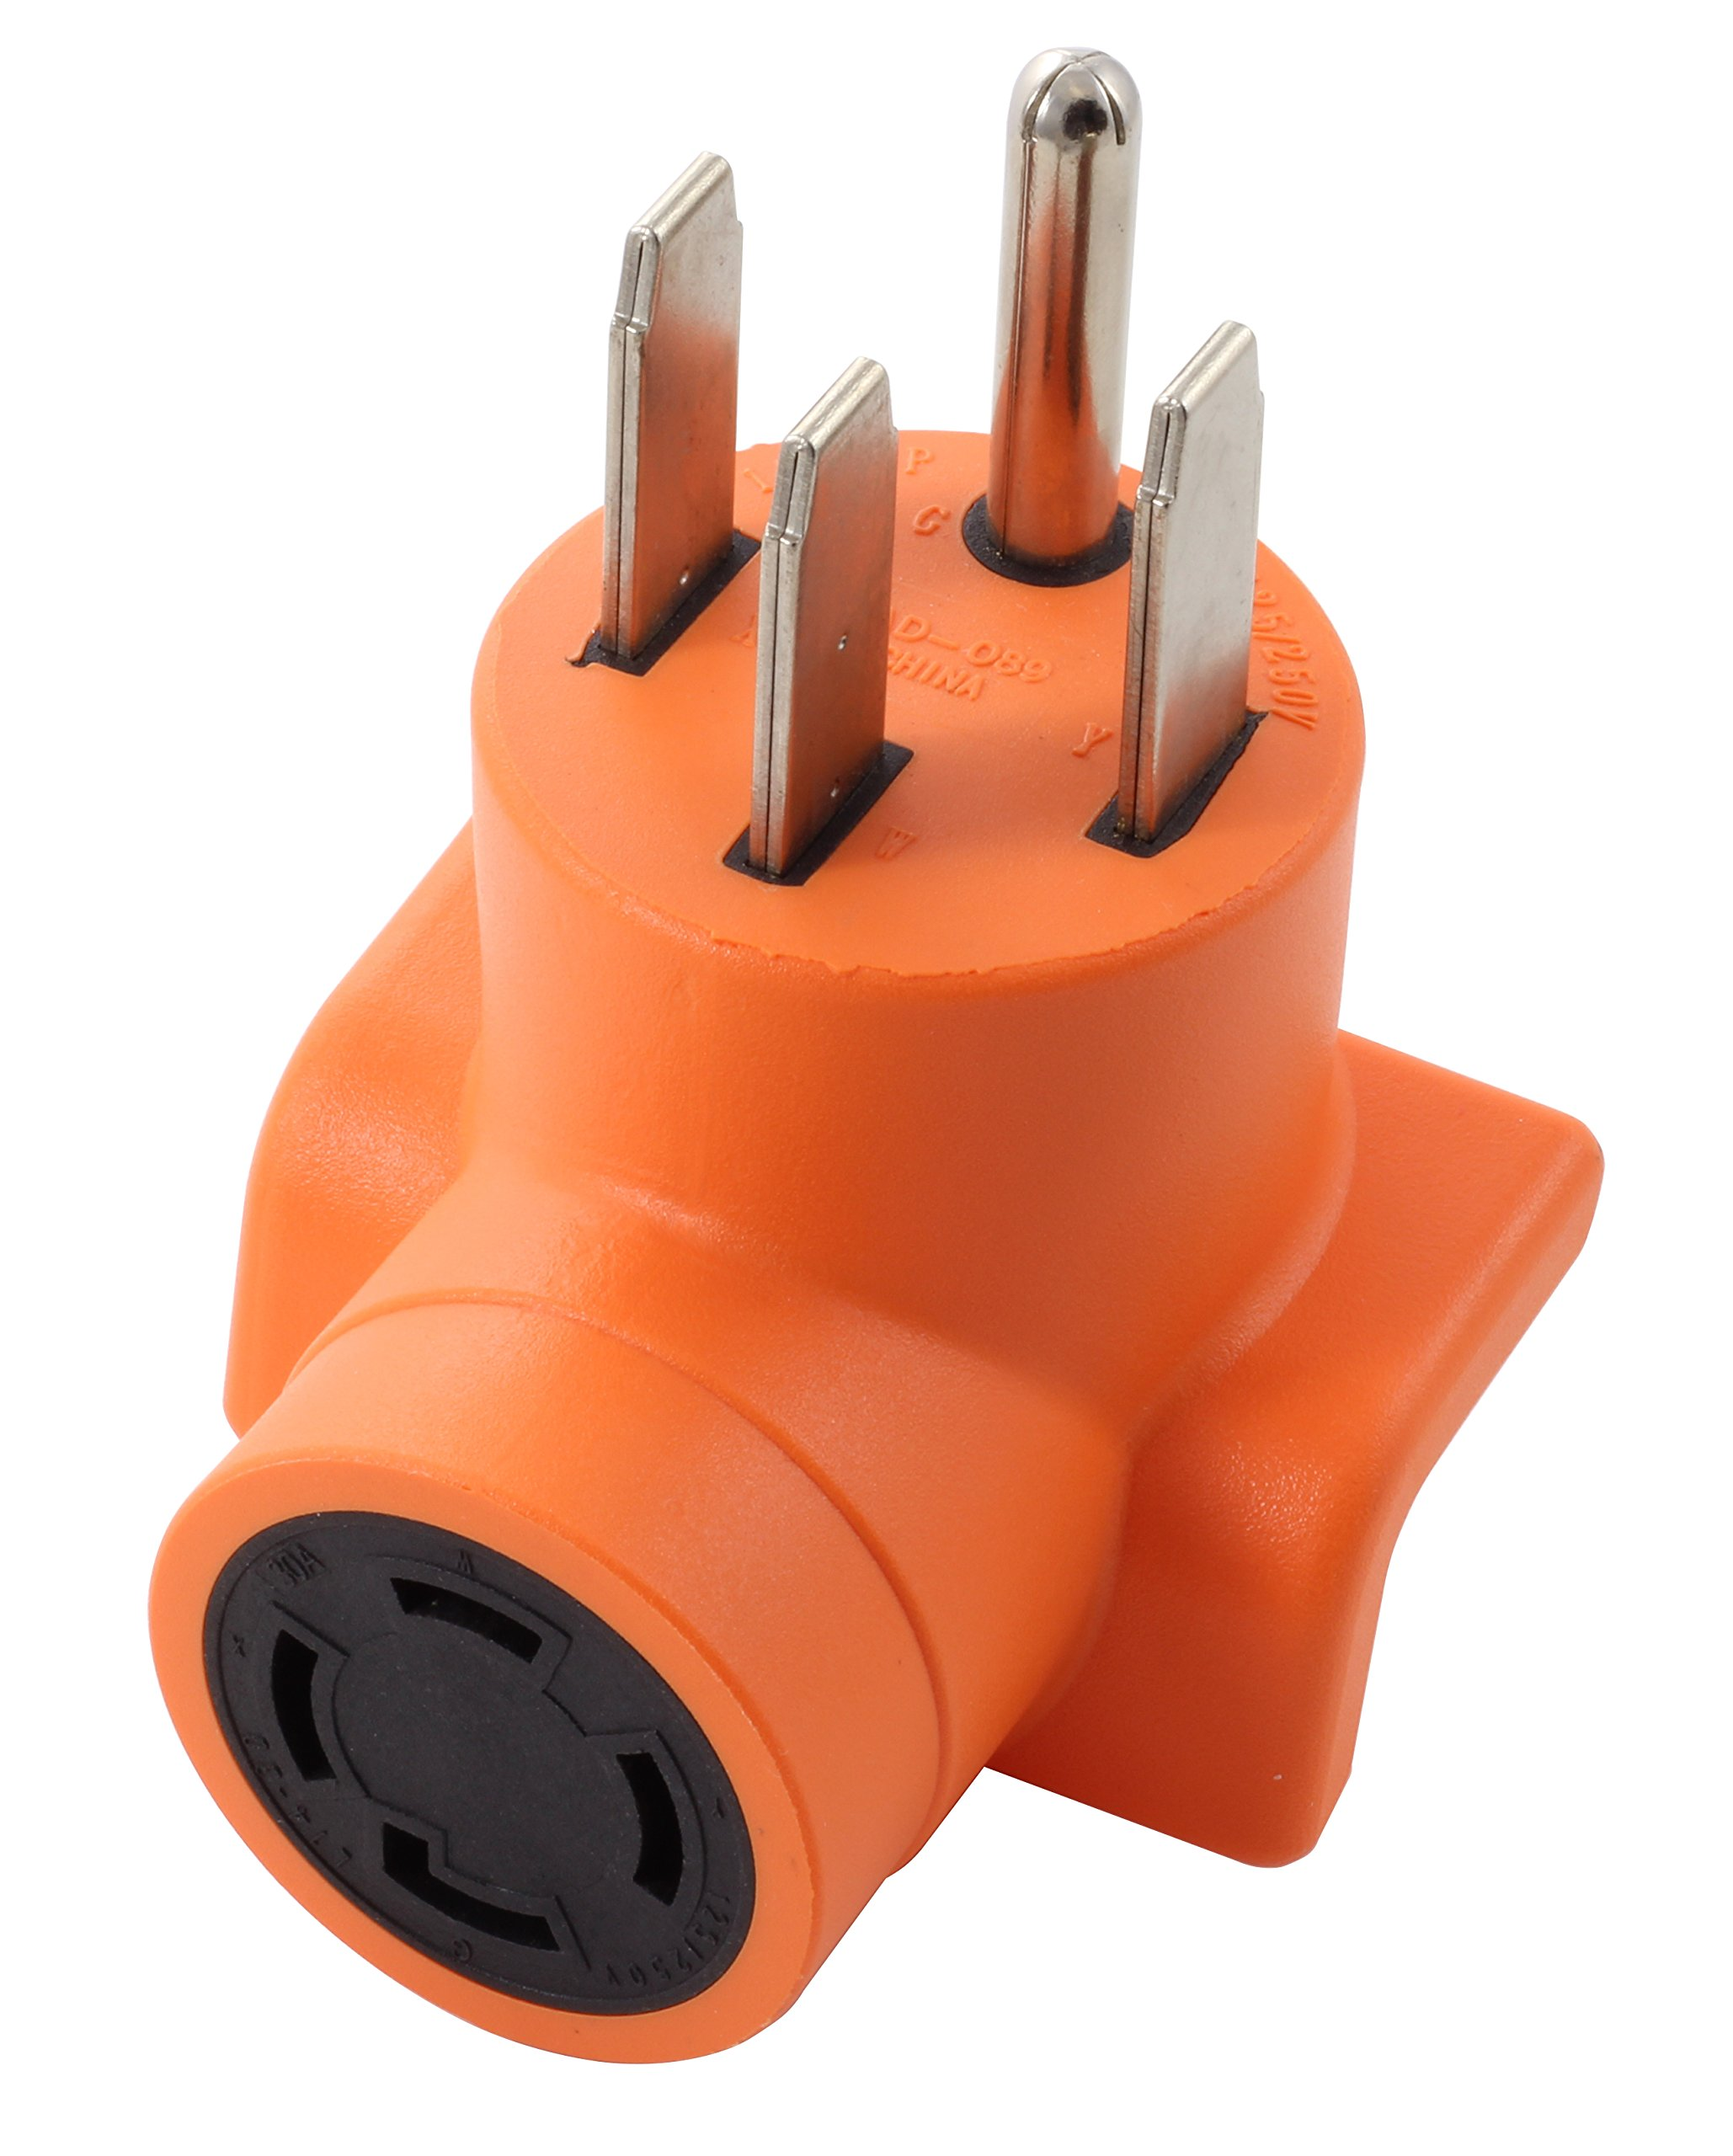 AC WORKS [AD1450L1430] Range/ RV/ Generator Outlet Adapter 4-Prong 14-50P Plug to 4-Prong 30Amp Locking L14-30R Adapter